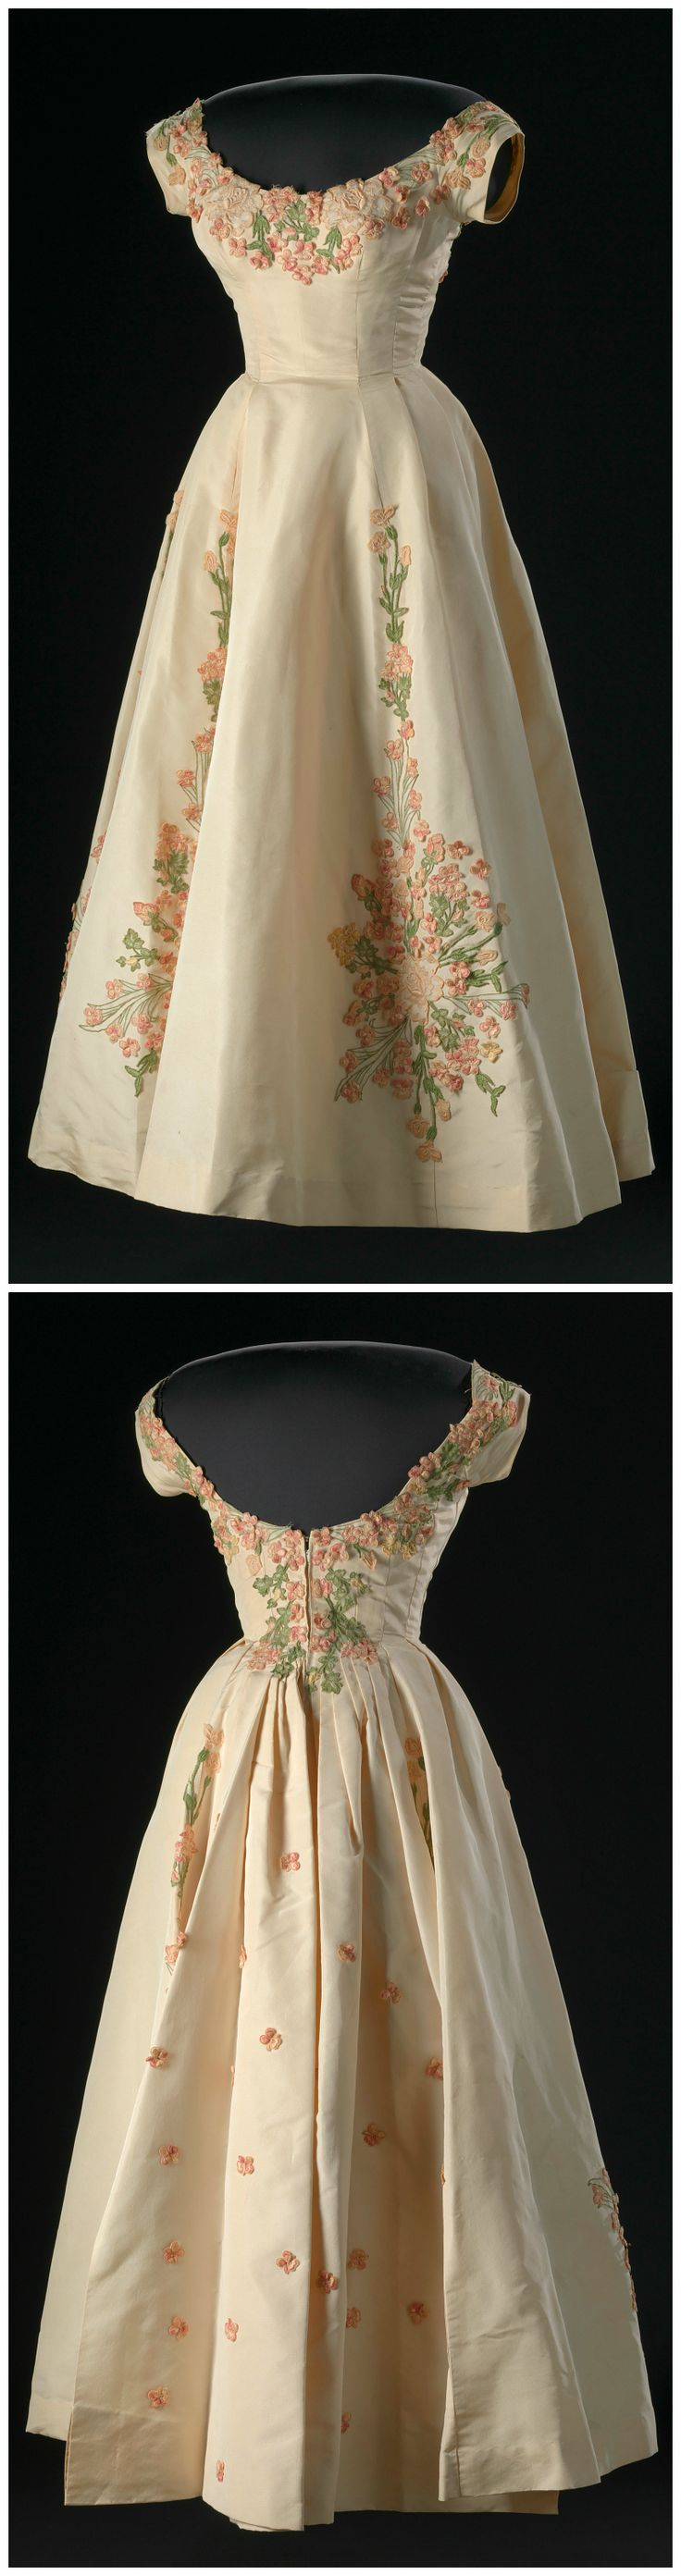 Dress designed by Ann Lowe, New York City, 1958. Belonged to Patricia Penrose Schieffer, wife of CBS News' Bob Schieffer. Silk, tulle, linen, metal, and elastic. Collection of the Smithsonian National Museum of African American History and Culture, Gift of the Black Fashion Museum founded by Lois K. Alexander-Lane.